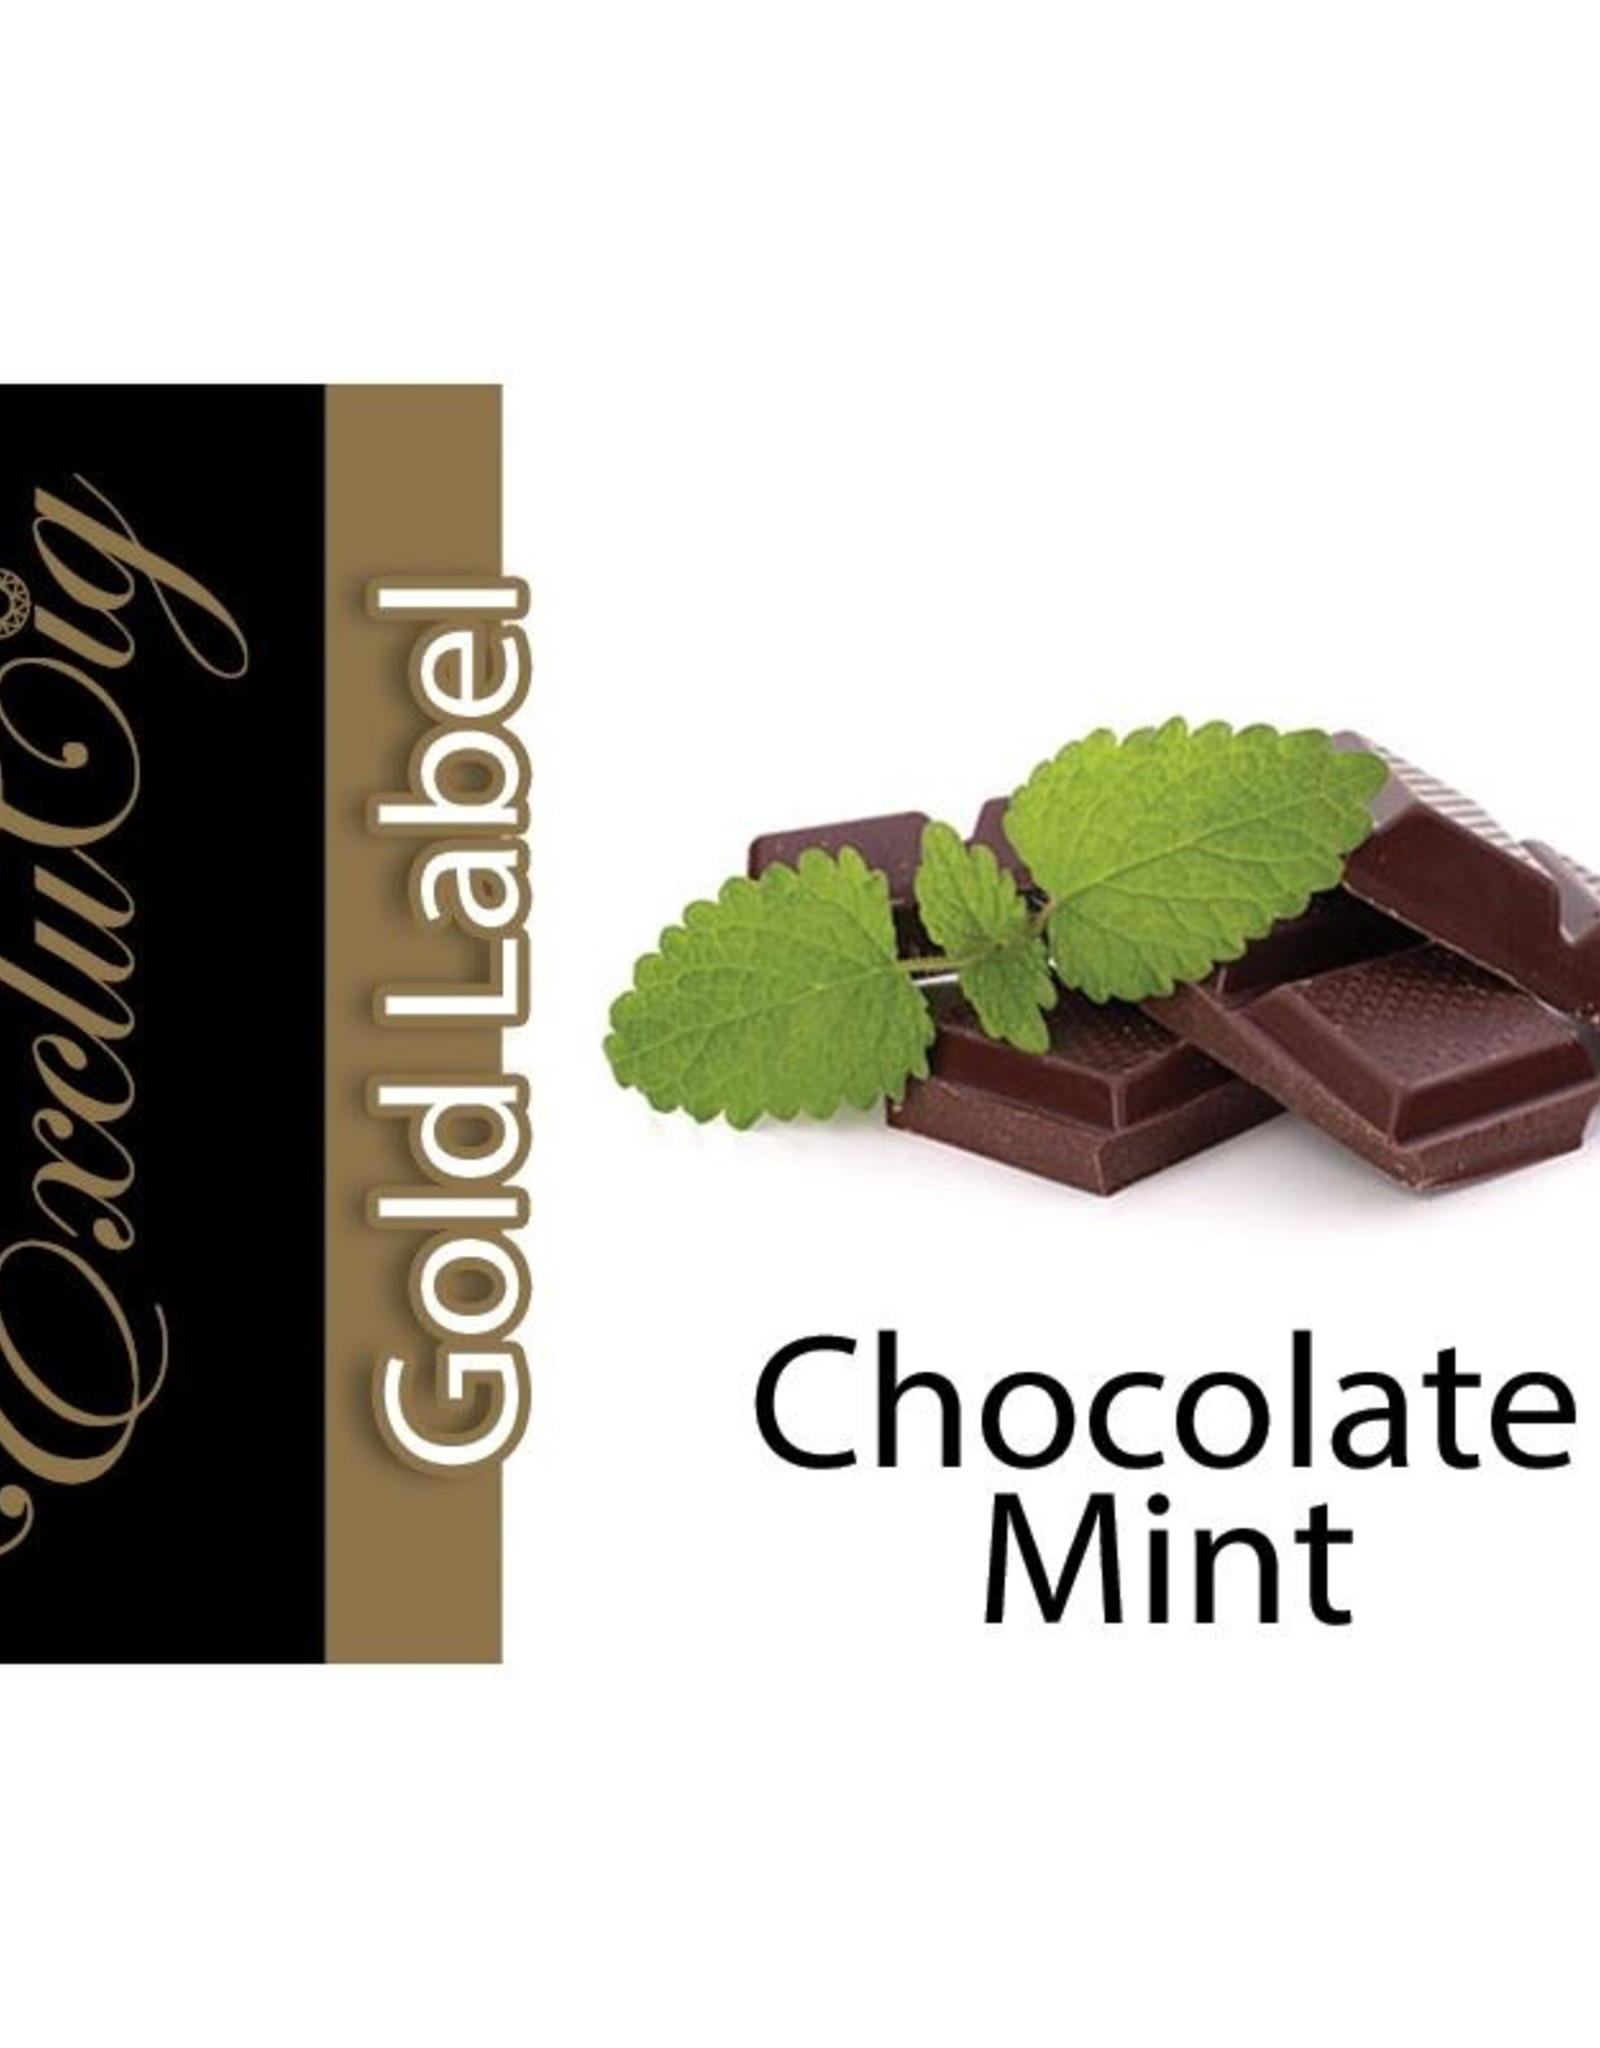 Exclucig Exclucig Gold Label E-liquid Chocolate MInt 0 mg Nicotine